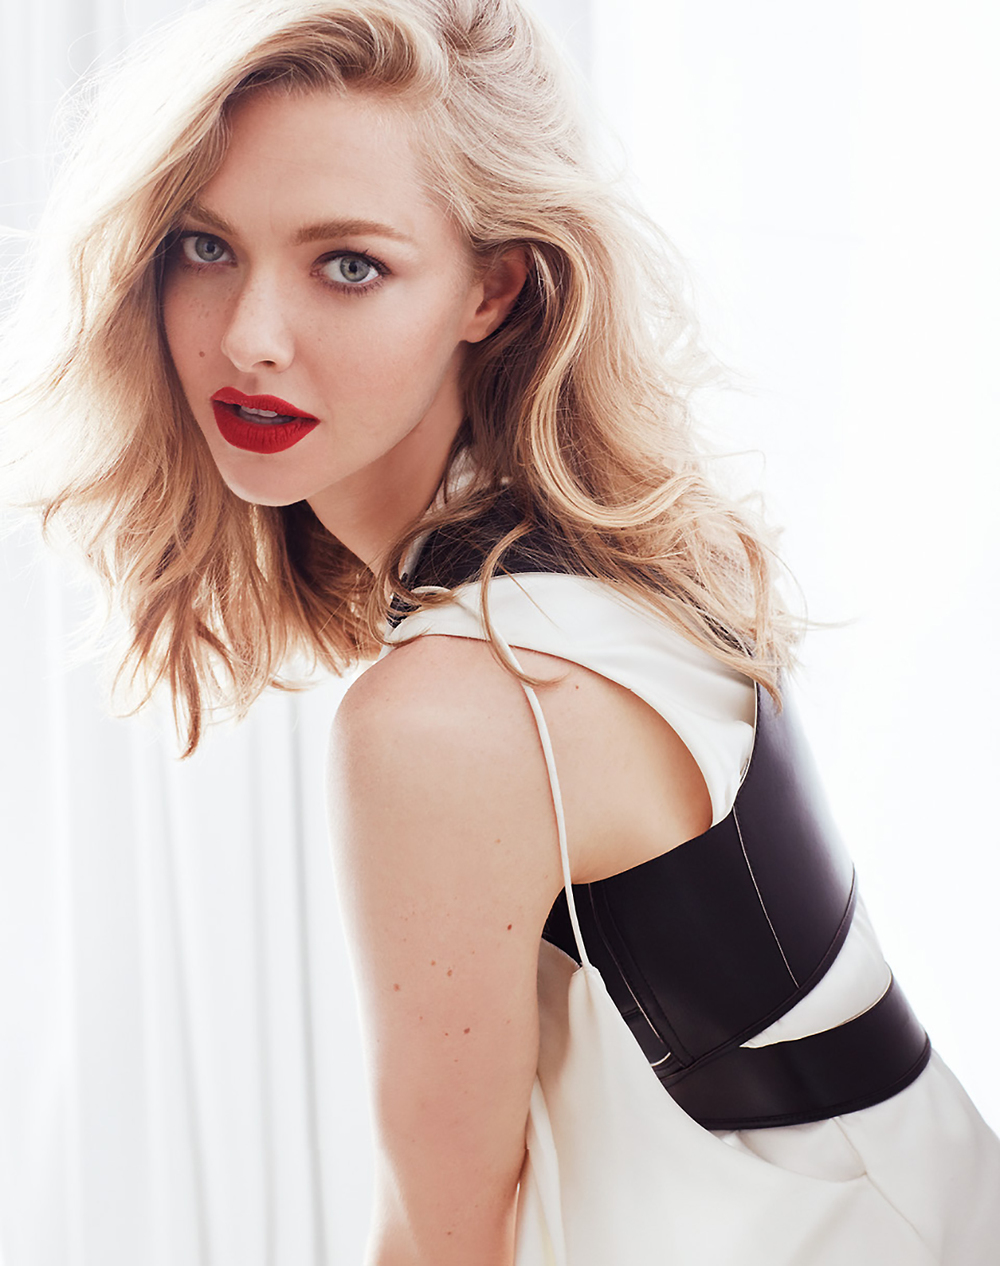 Vogue_Russia_Beauty-September_2016-Amanda_Seyfried-by-Alexi_Lubomirski-04.jpg